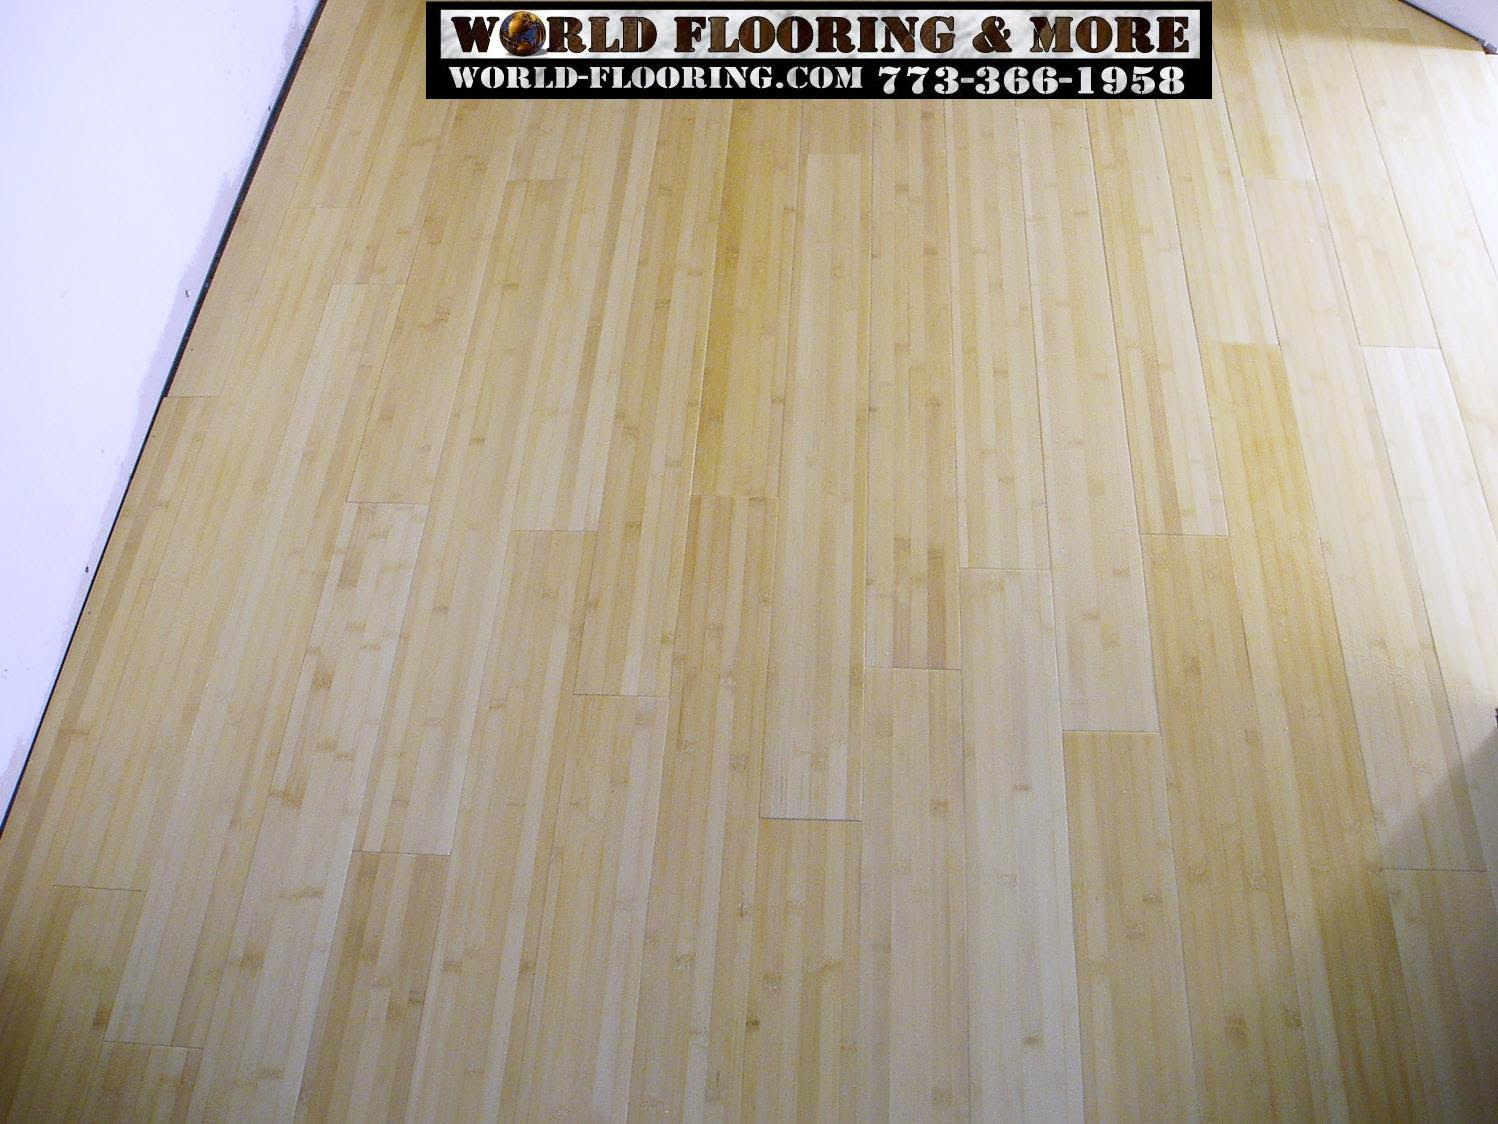 Bamboo floor prefinished engineered and laminate flooring Chicago ...